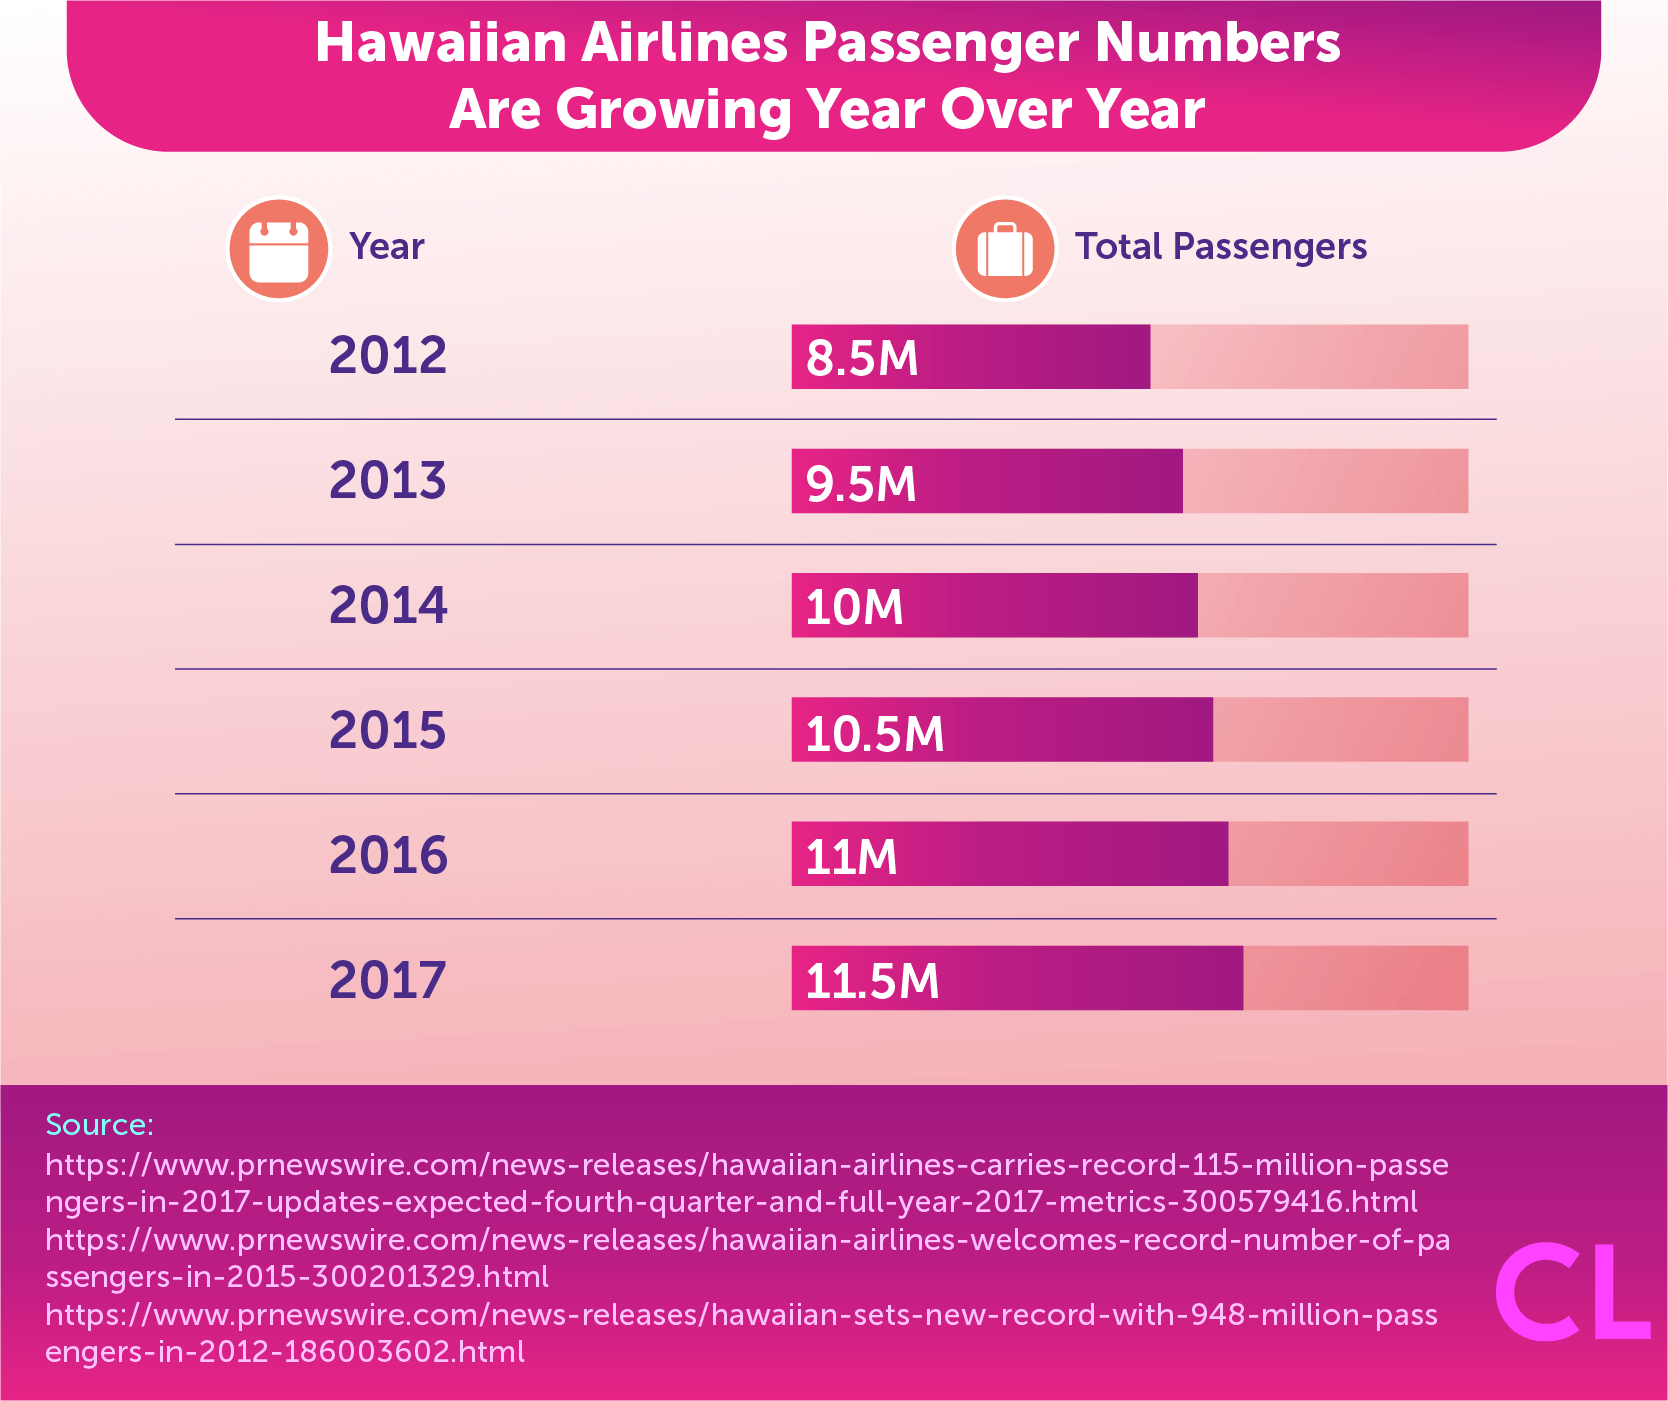 Hawaiian Airlines Passenger Numbers Are Growing Year Over Year